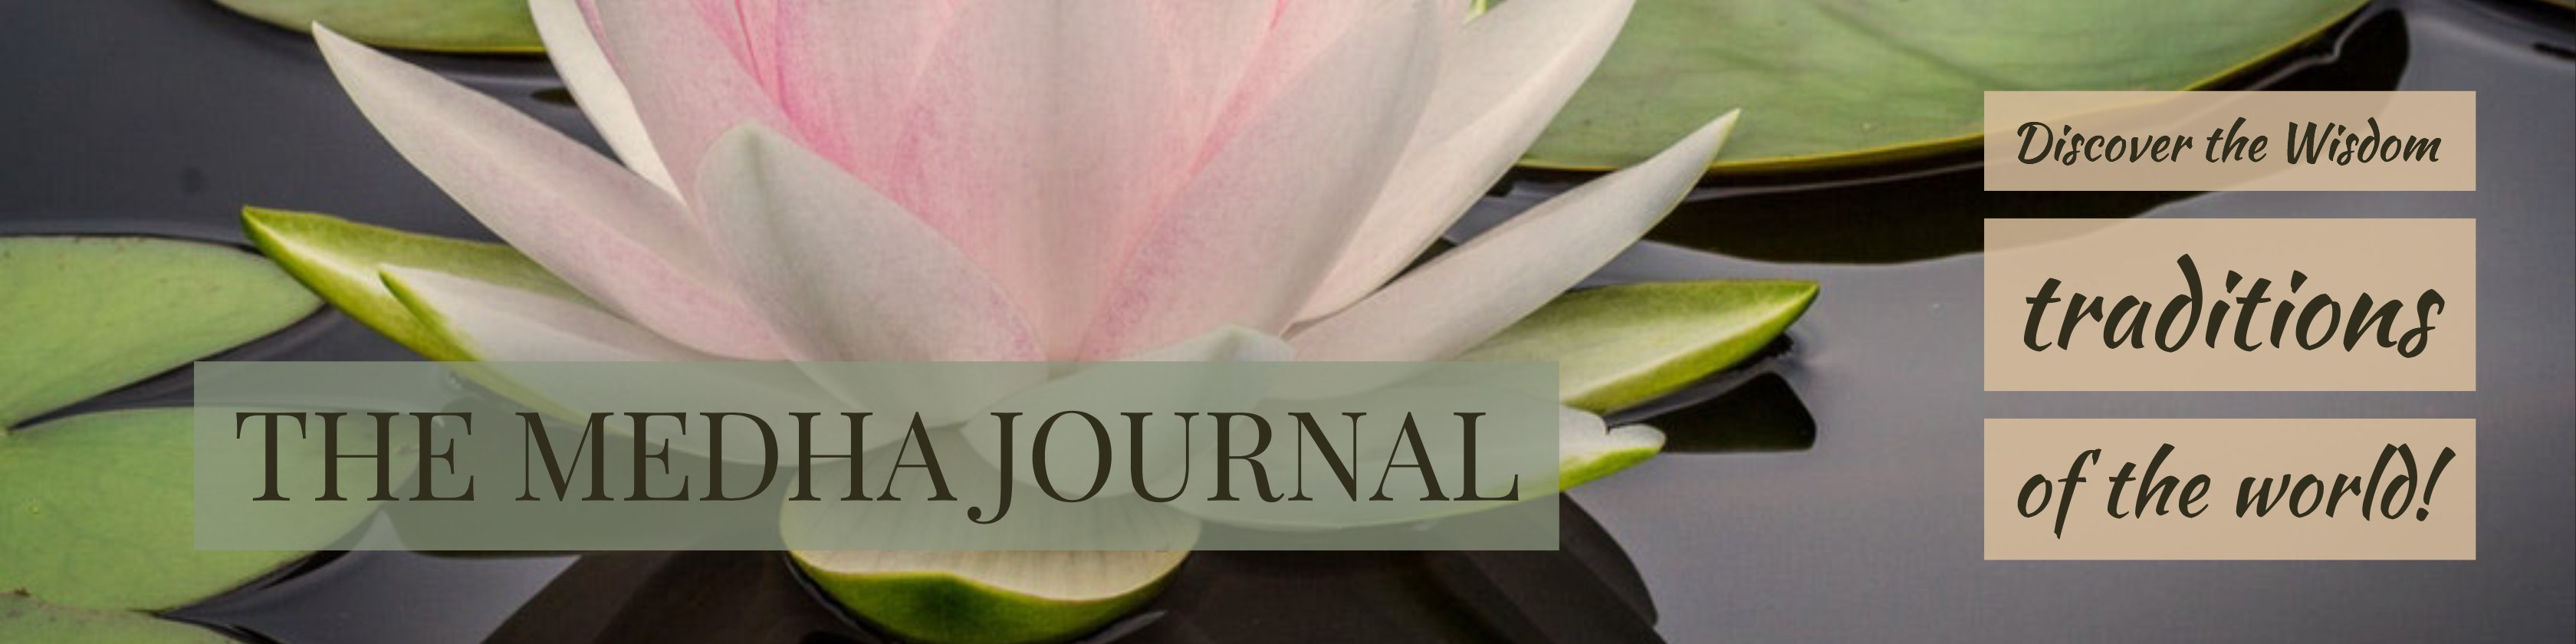 The Medha Journal